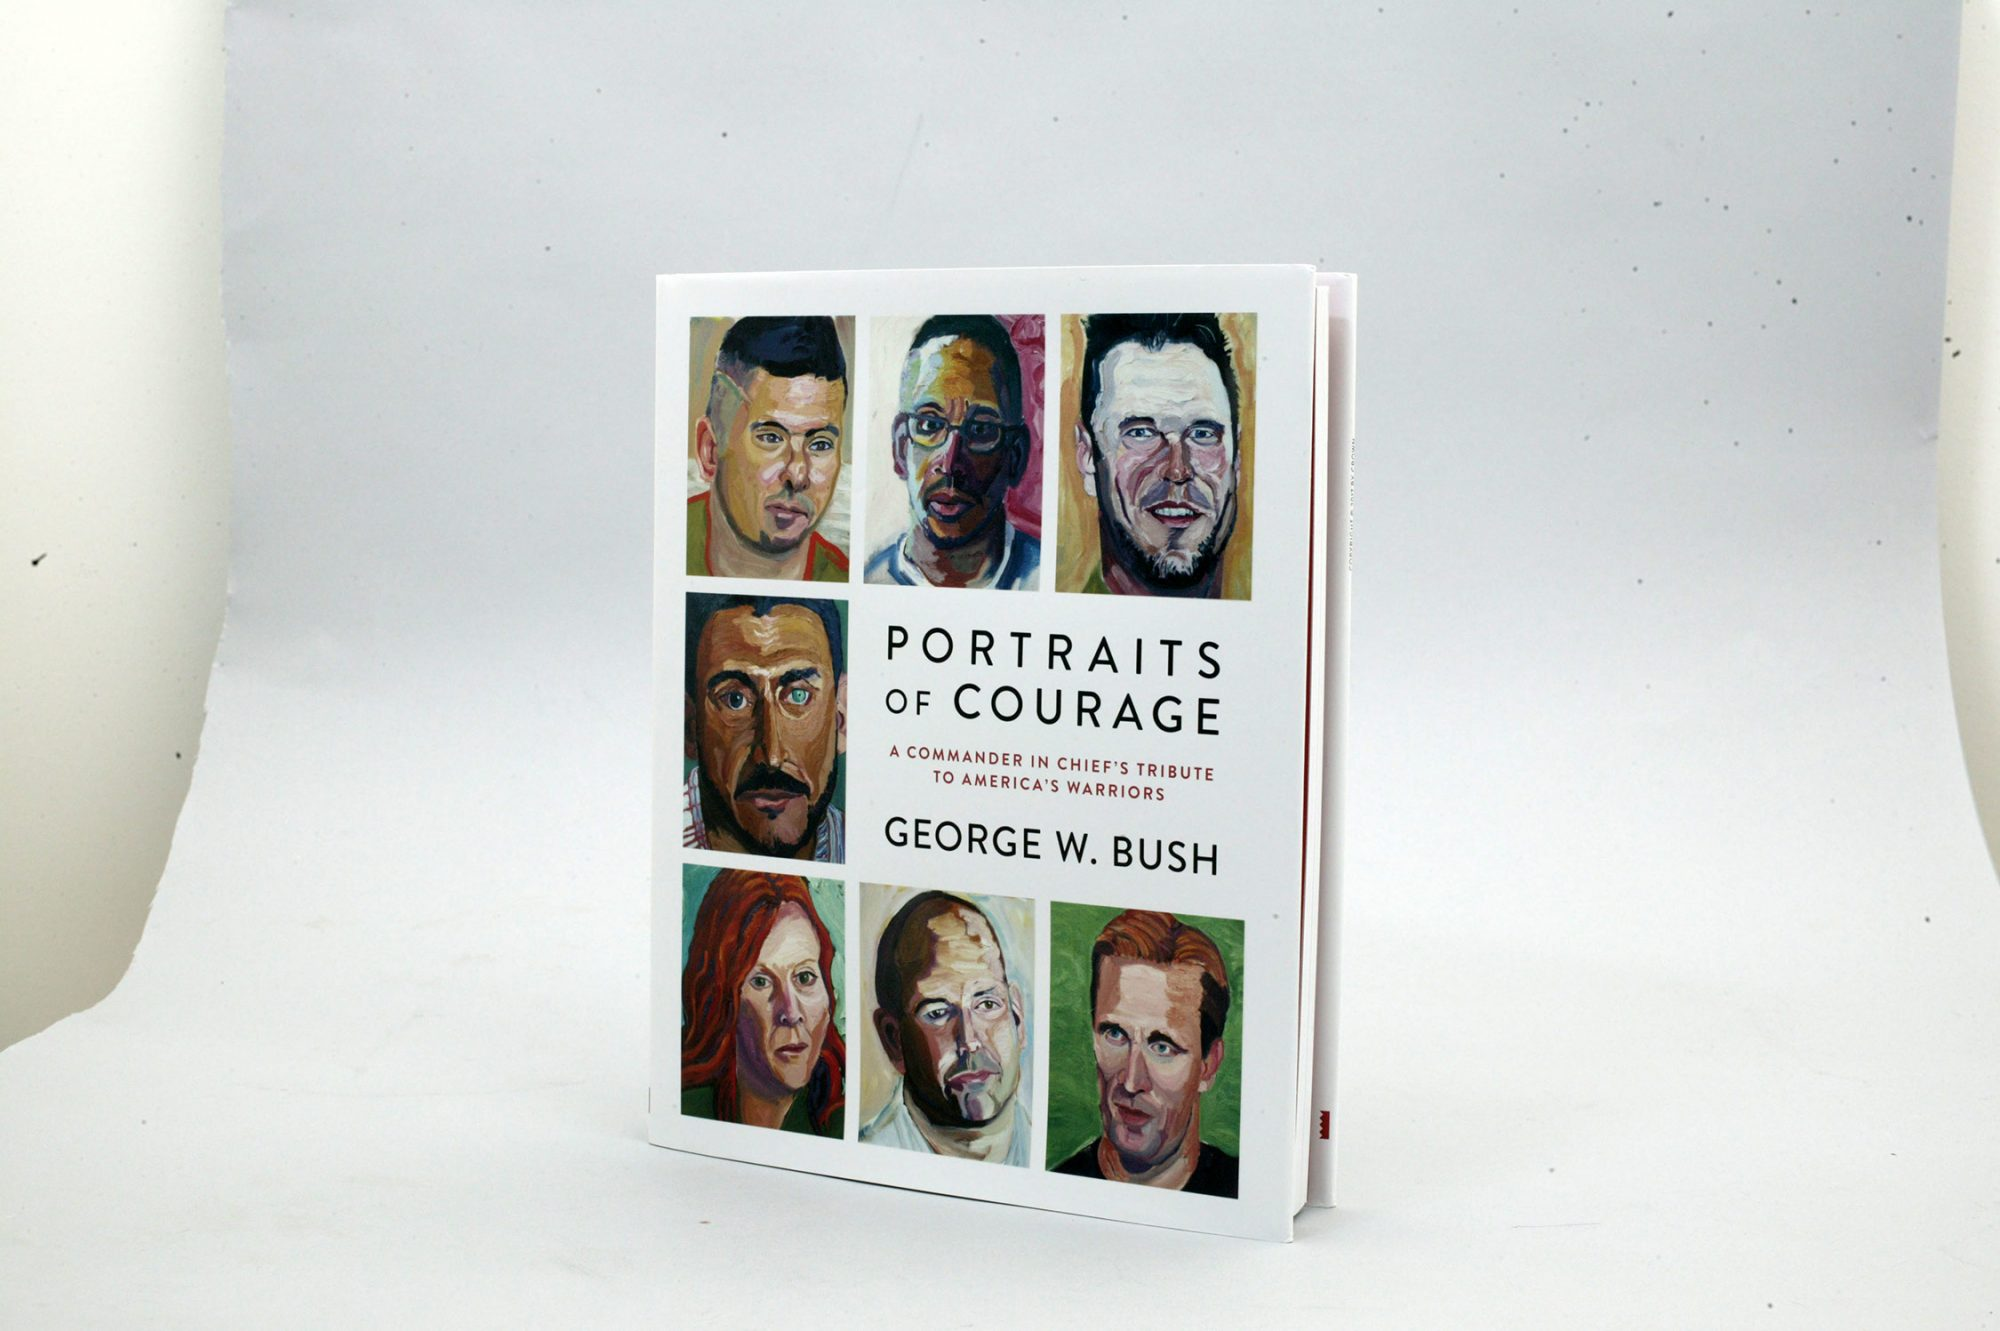 """Book cover for """"Portraits of courage: A Commander in Chief's Tribute to America's Warriors"""" painted portrait of Veterans by George W. Bush. Credit: Peter Zambouros"""